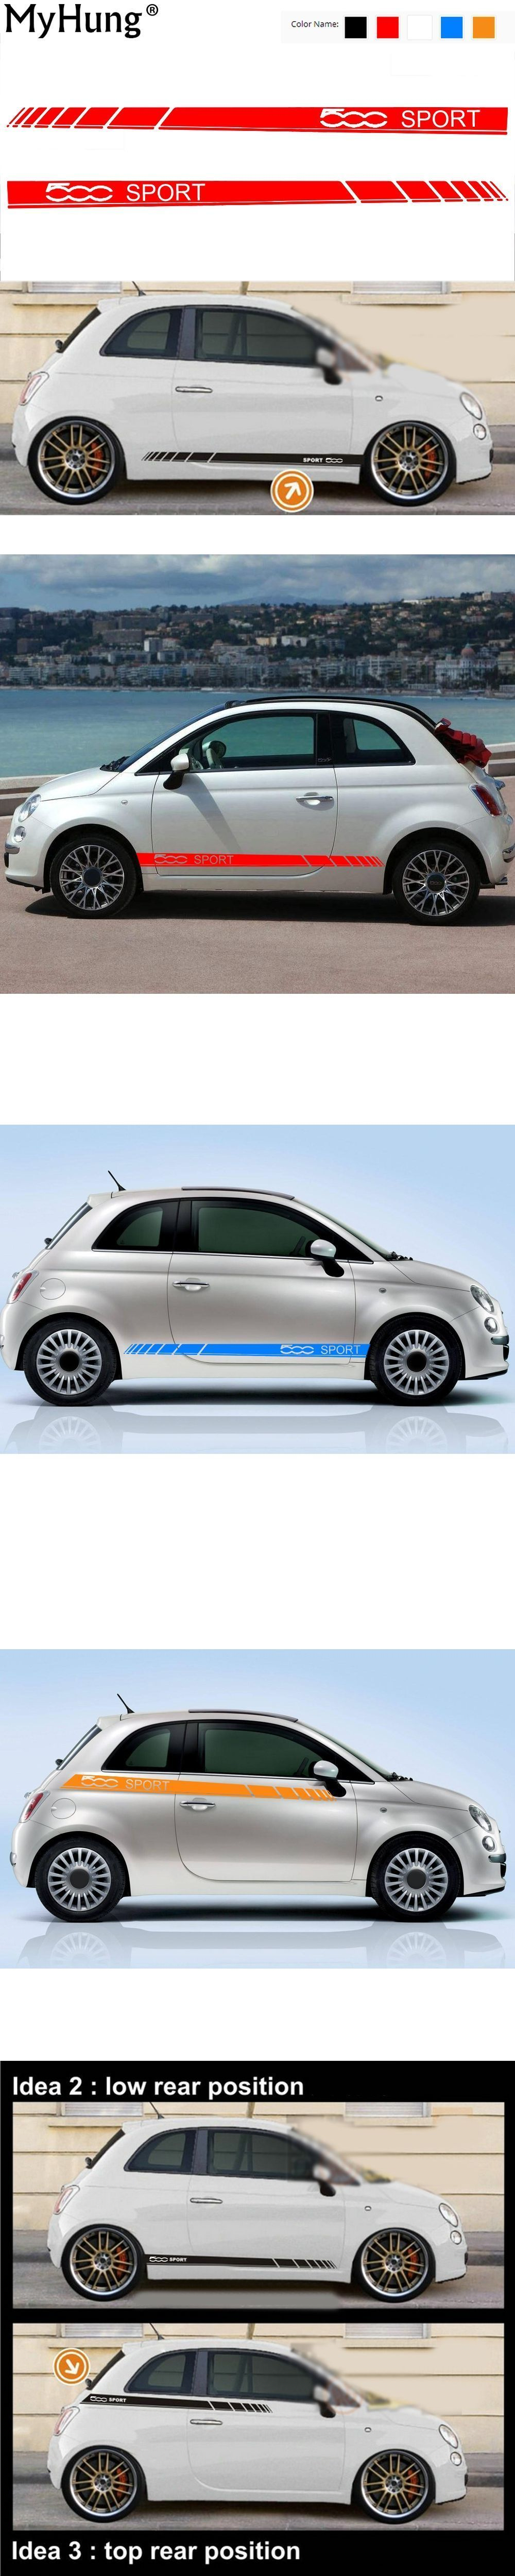 Car Body Sticker For Fiat 500 Sport Car Stickers And Decals Decoration Protection Sticker Car Styling Auto Accessori Fiat 500 Sport Car Accessories Sports Cars [ 5000 x 1000 Pixel ]